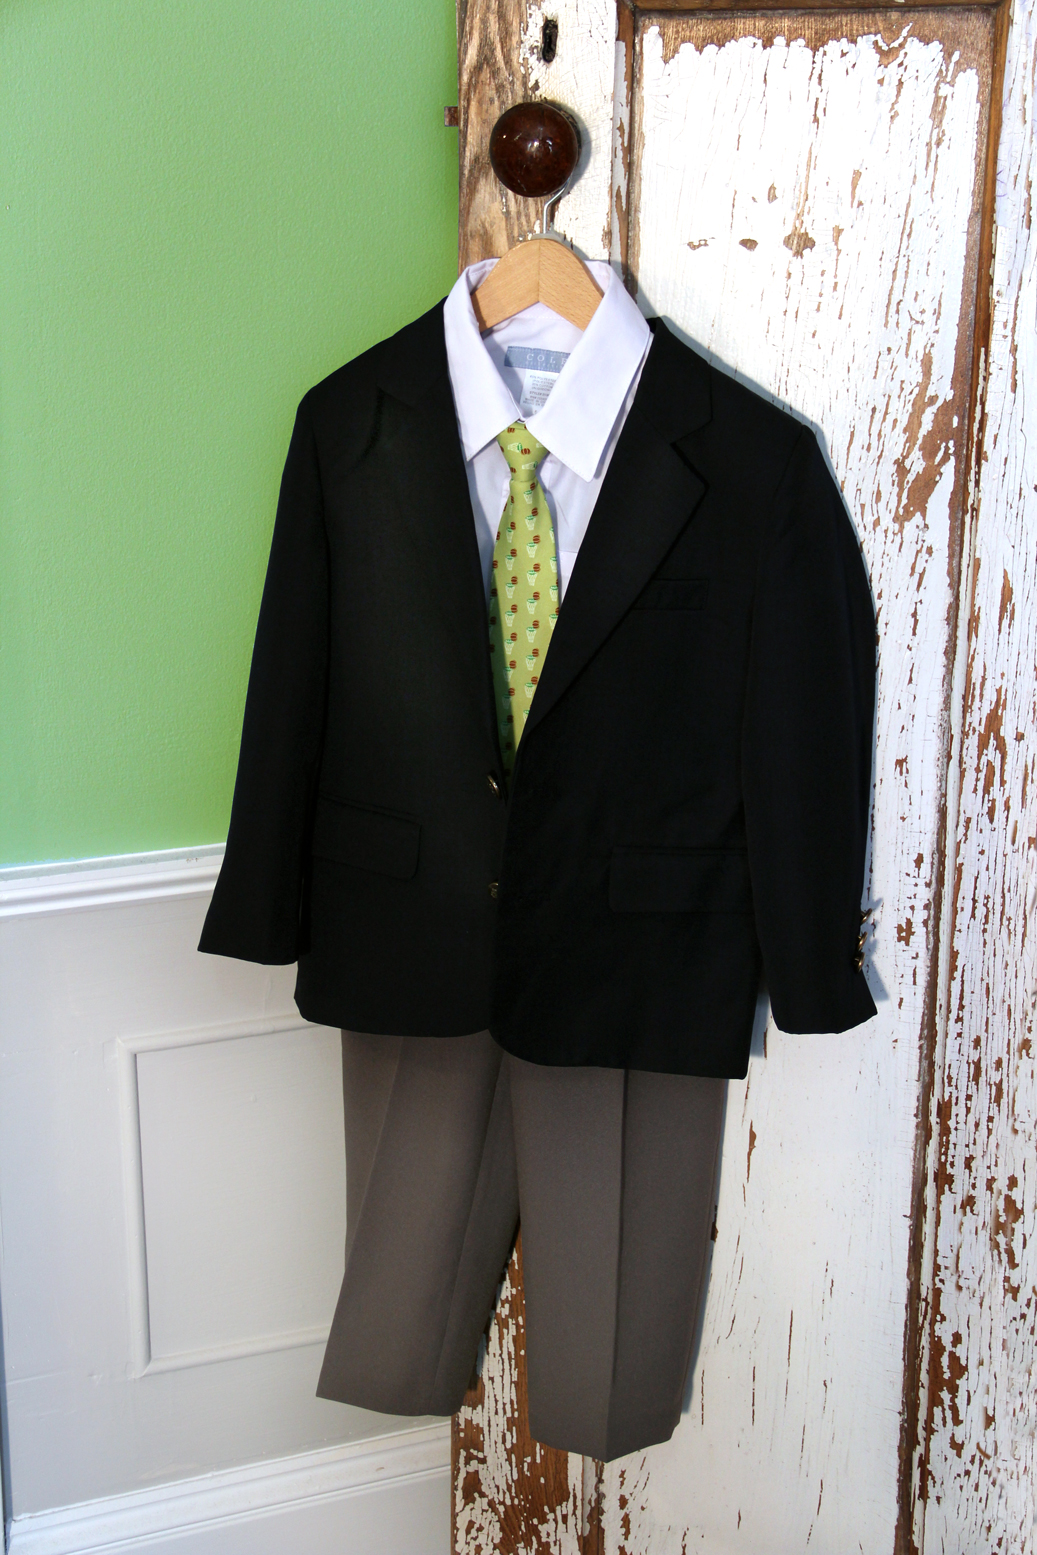 Blazers at great prices!